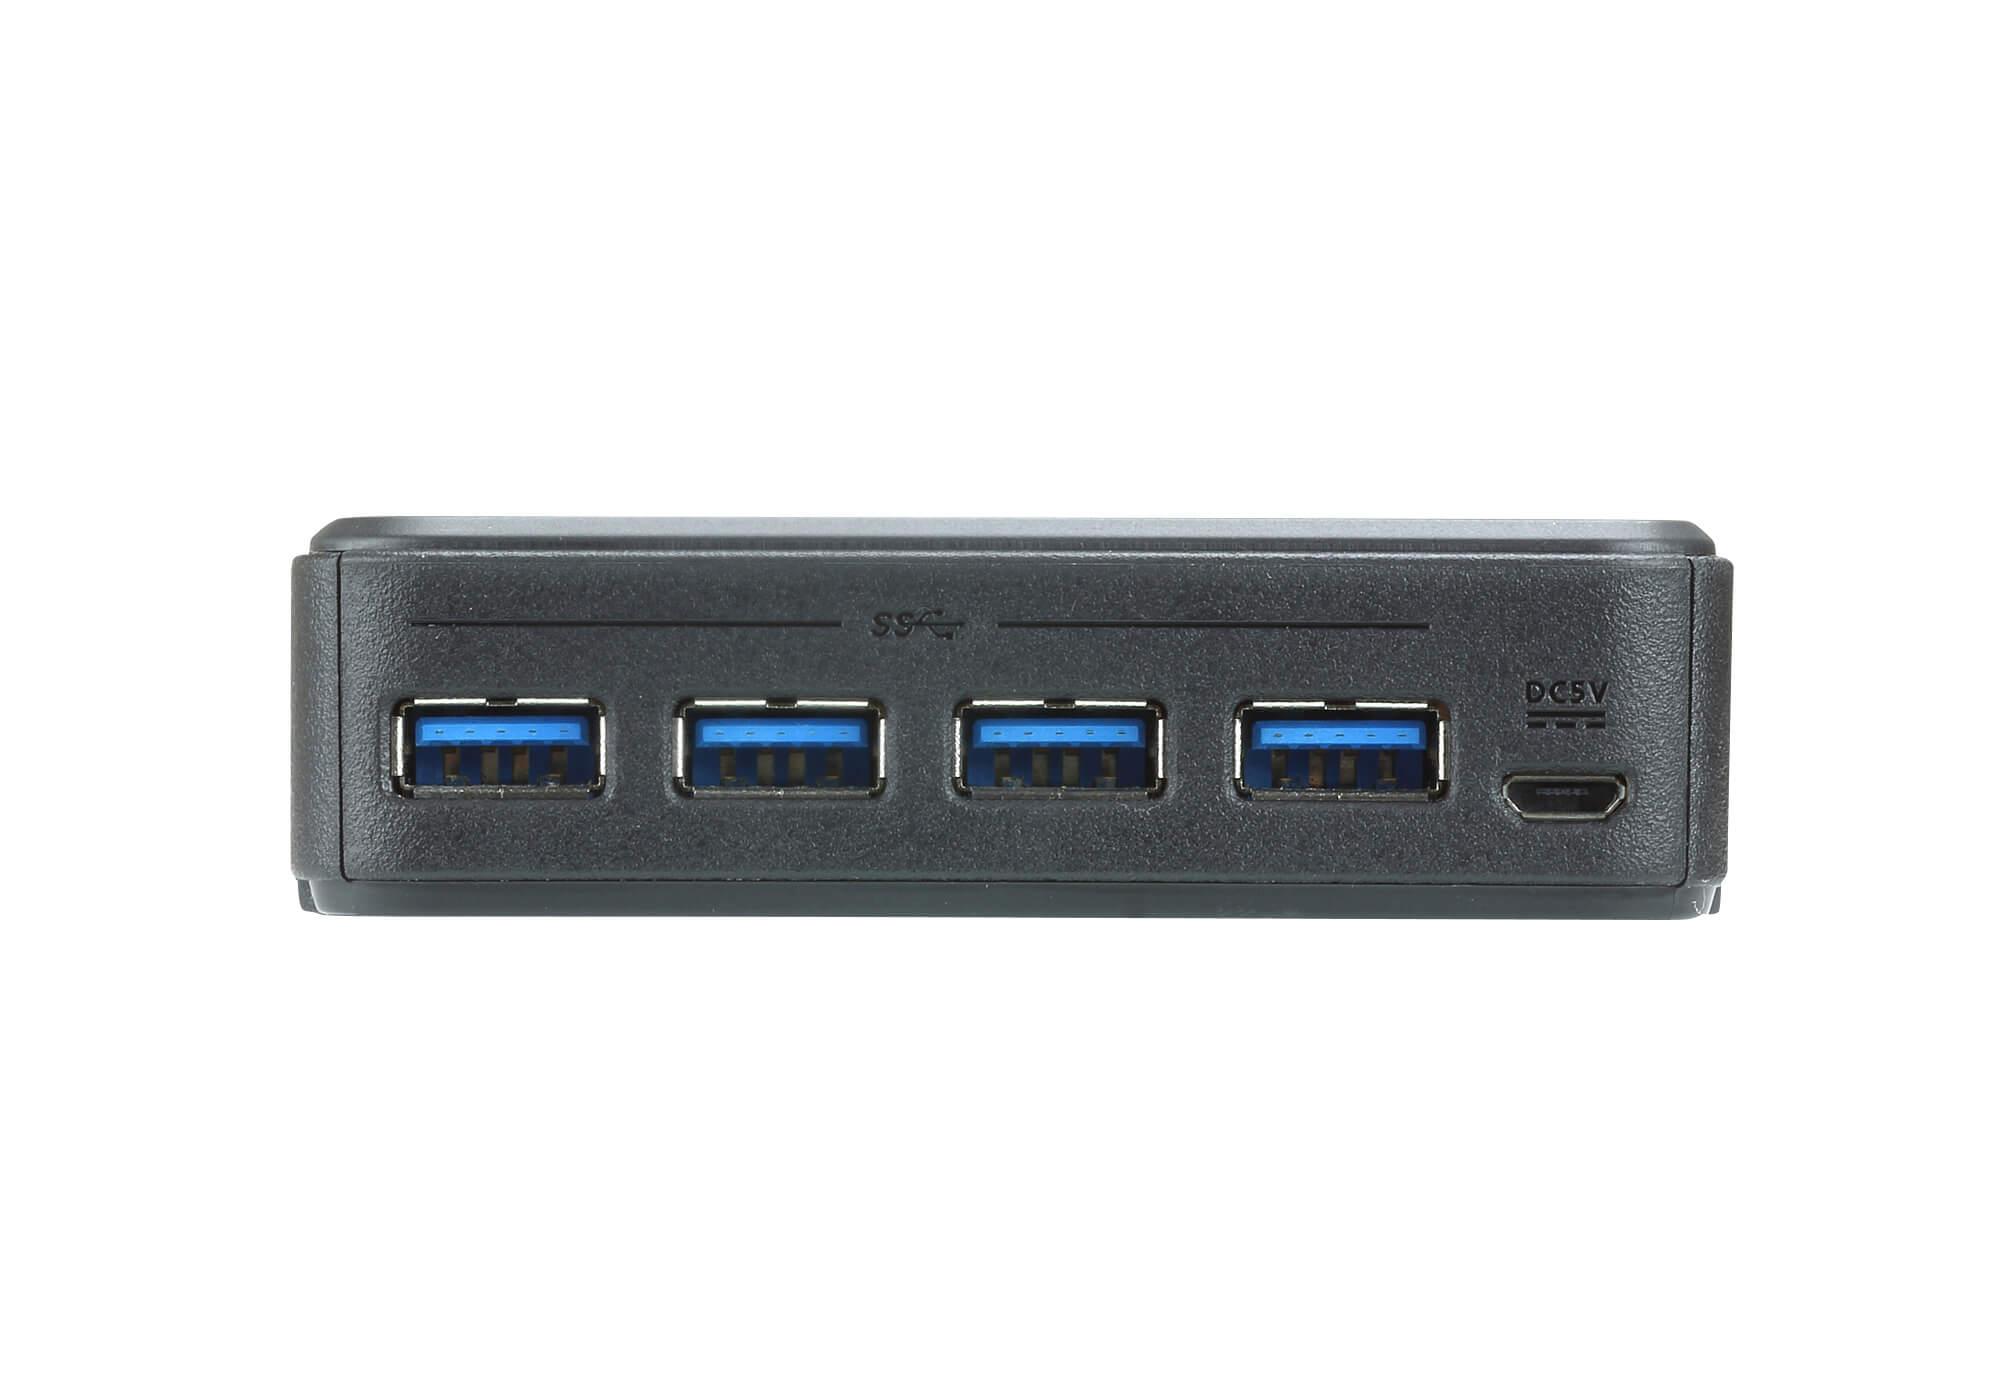 2 x 4 USB 3.2 Gen1 Peripheral Sharing Switch-3